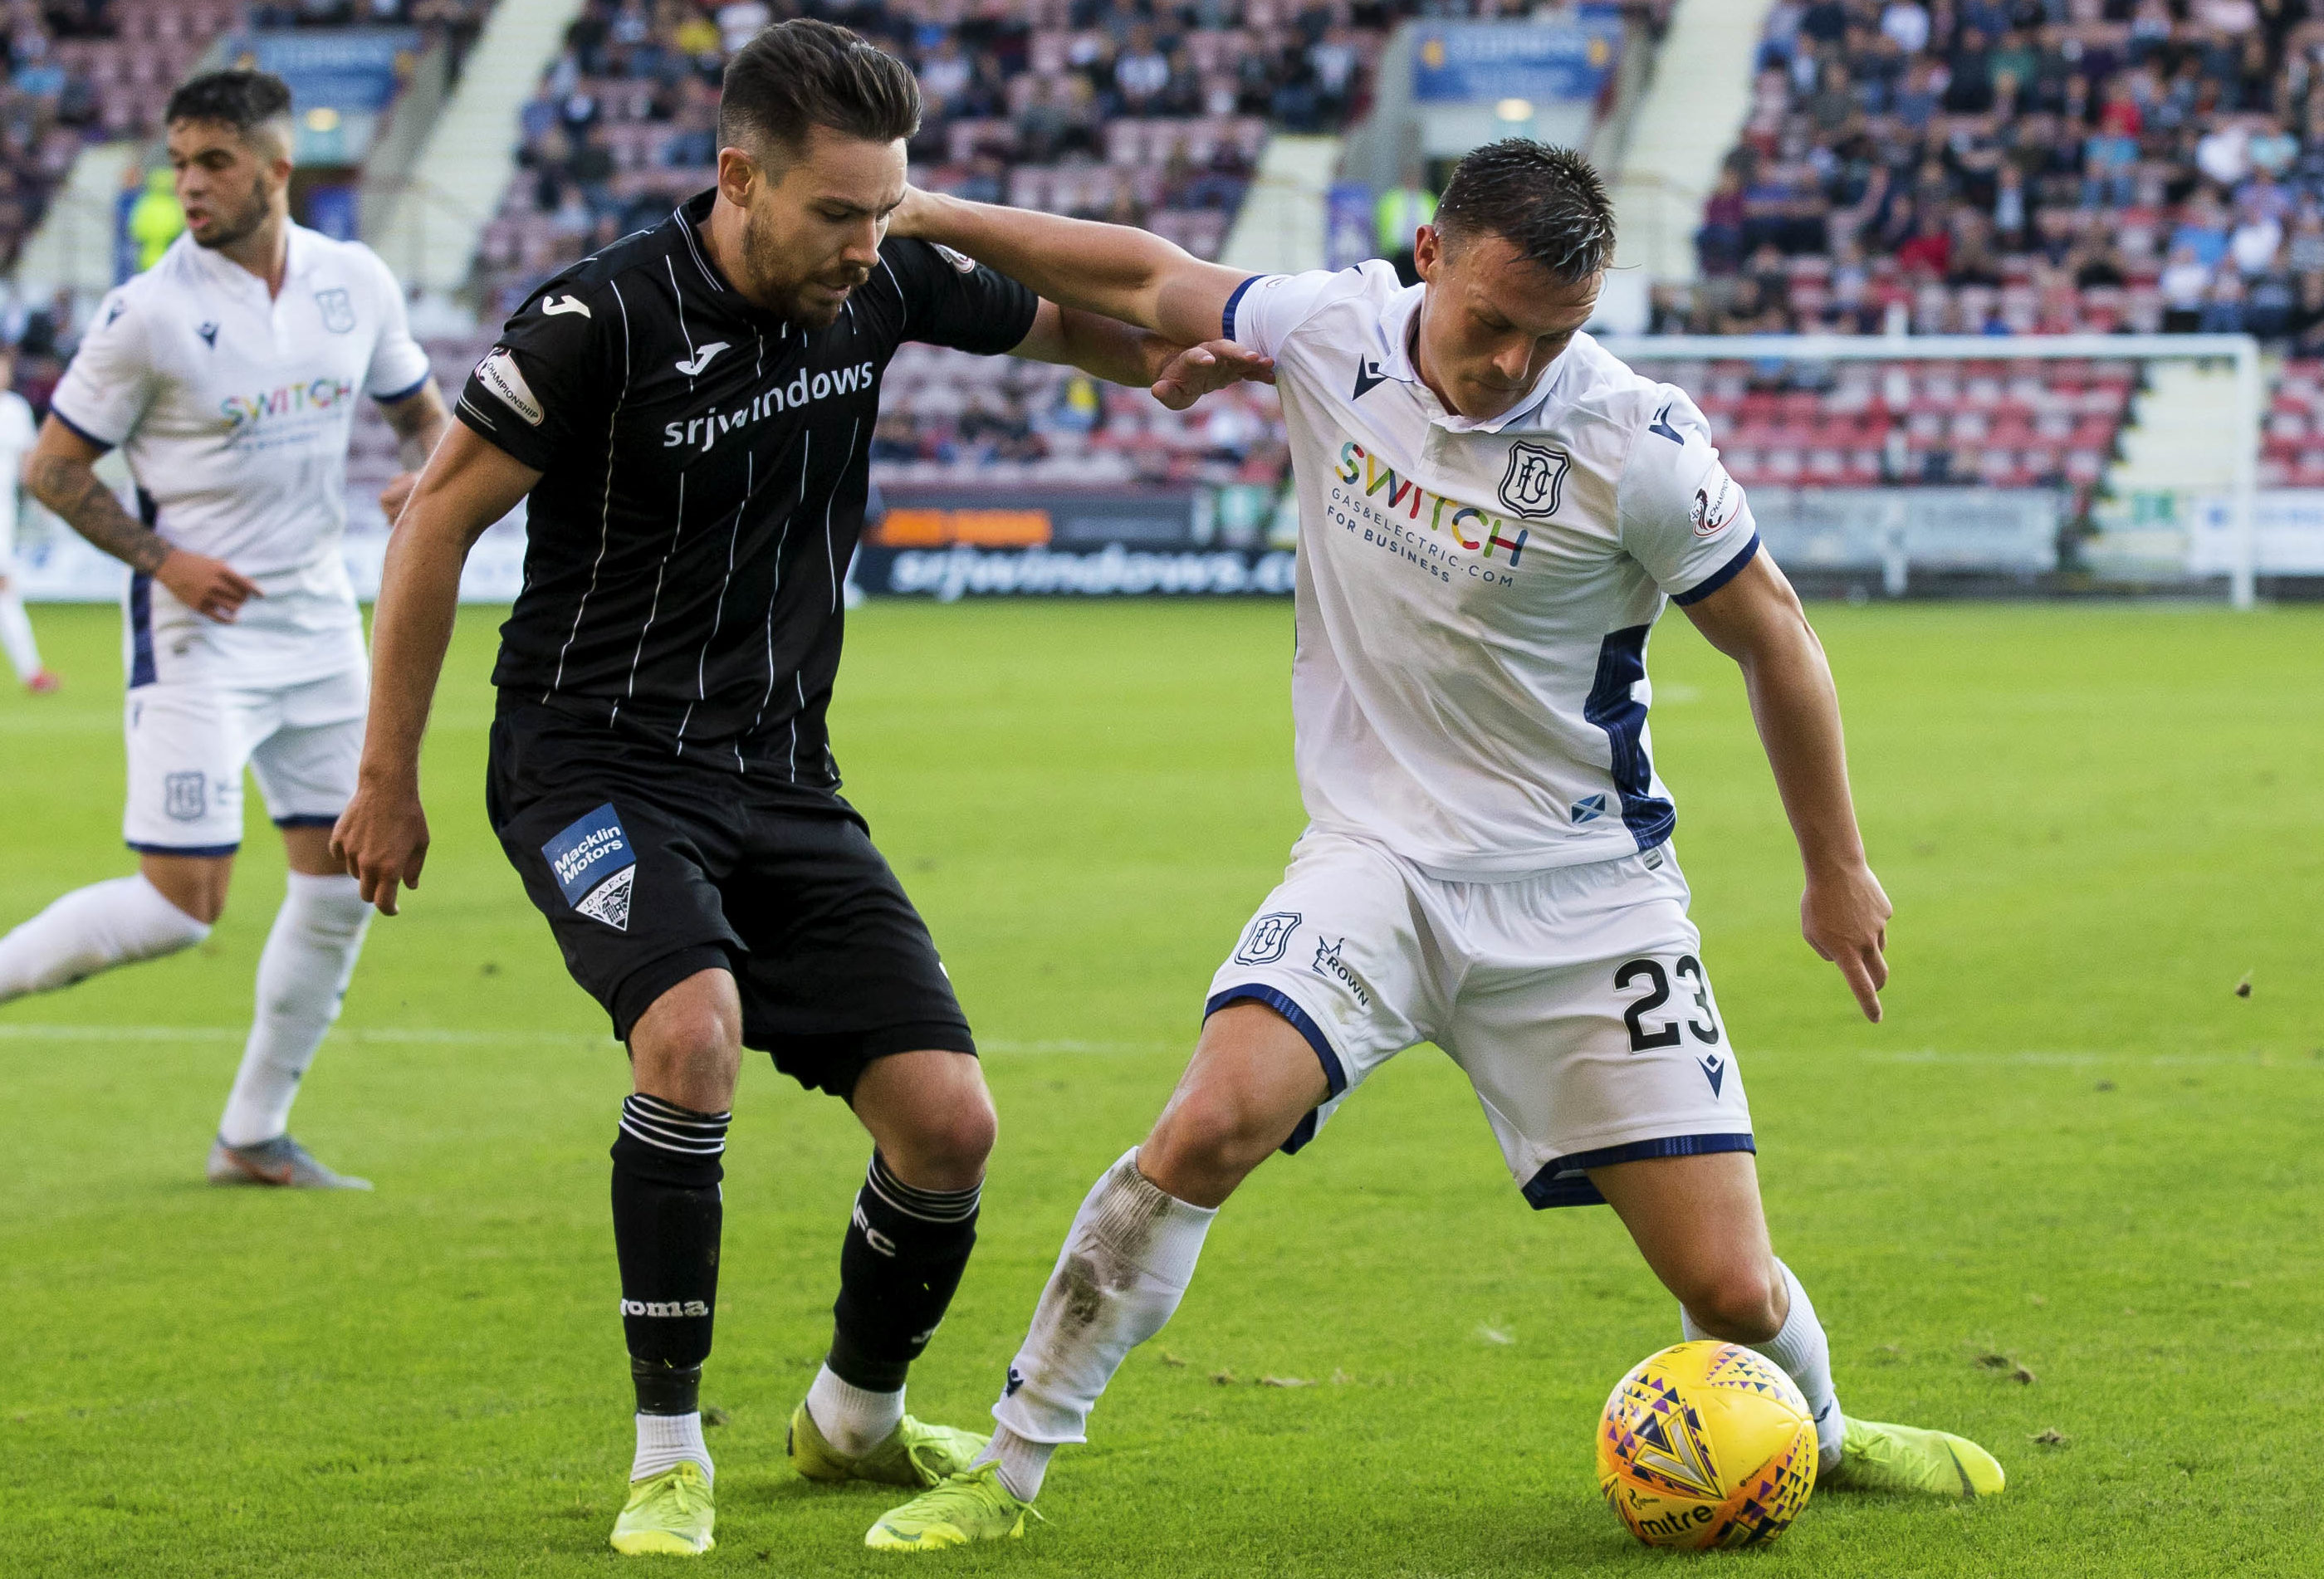 Jordan Marshall, right, holds off Dunfermline player Ryan Dow.